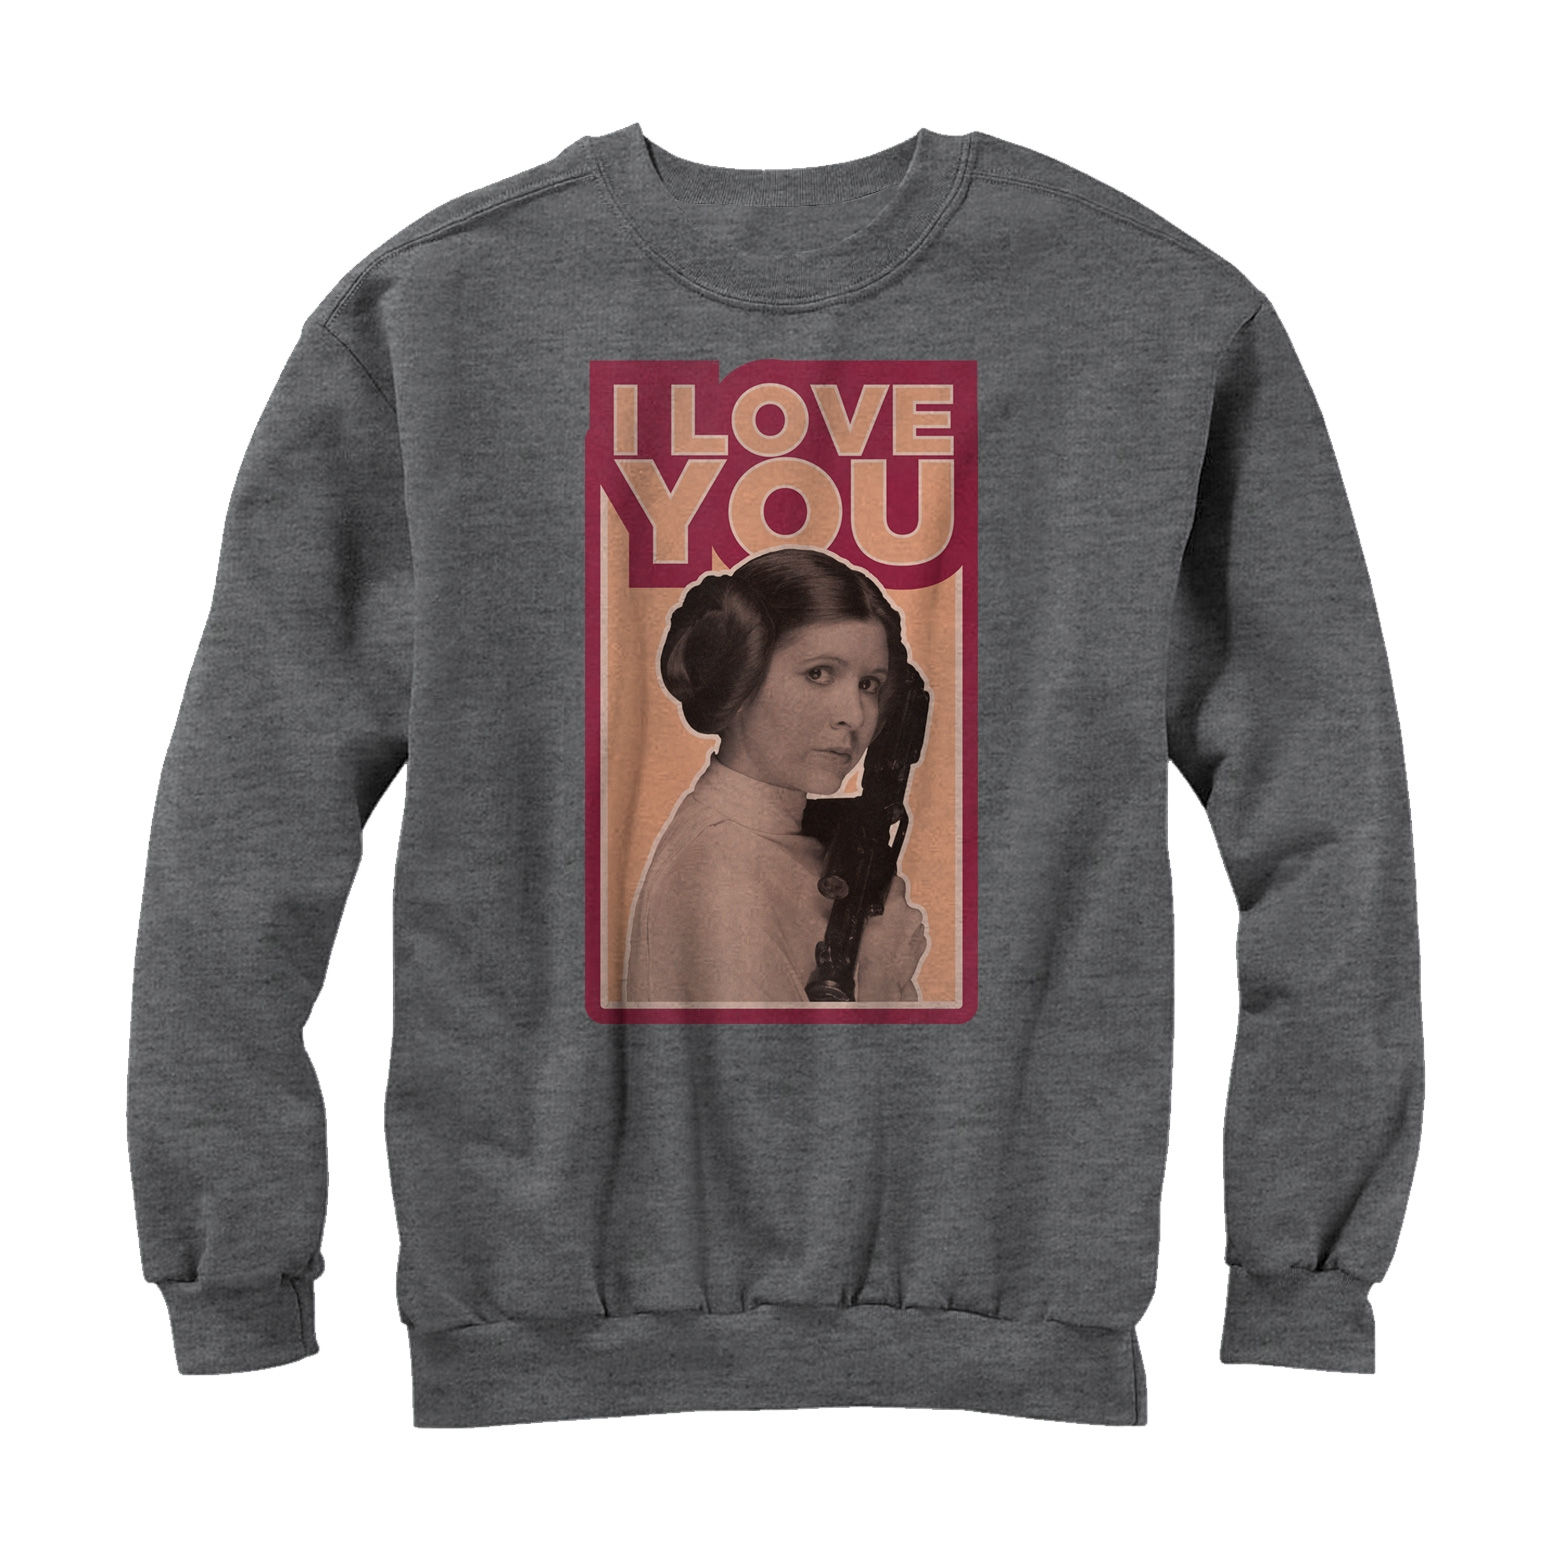 Star Wars Men's Princess Leia Quote I Love You Sweatshirt